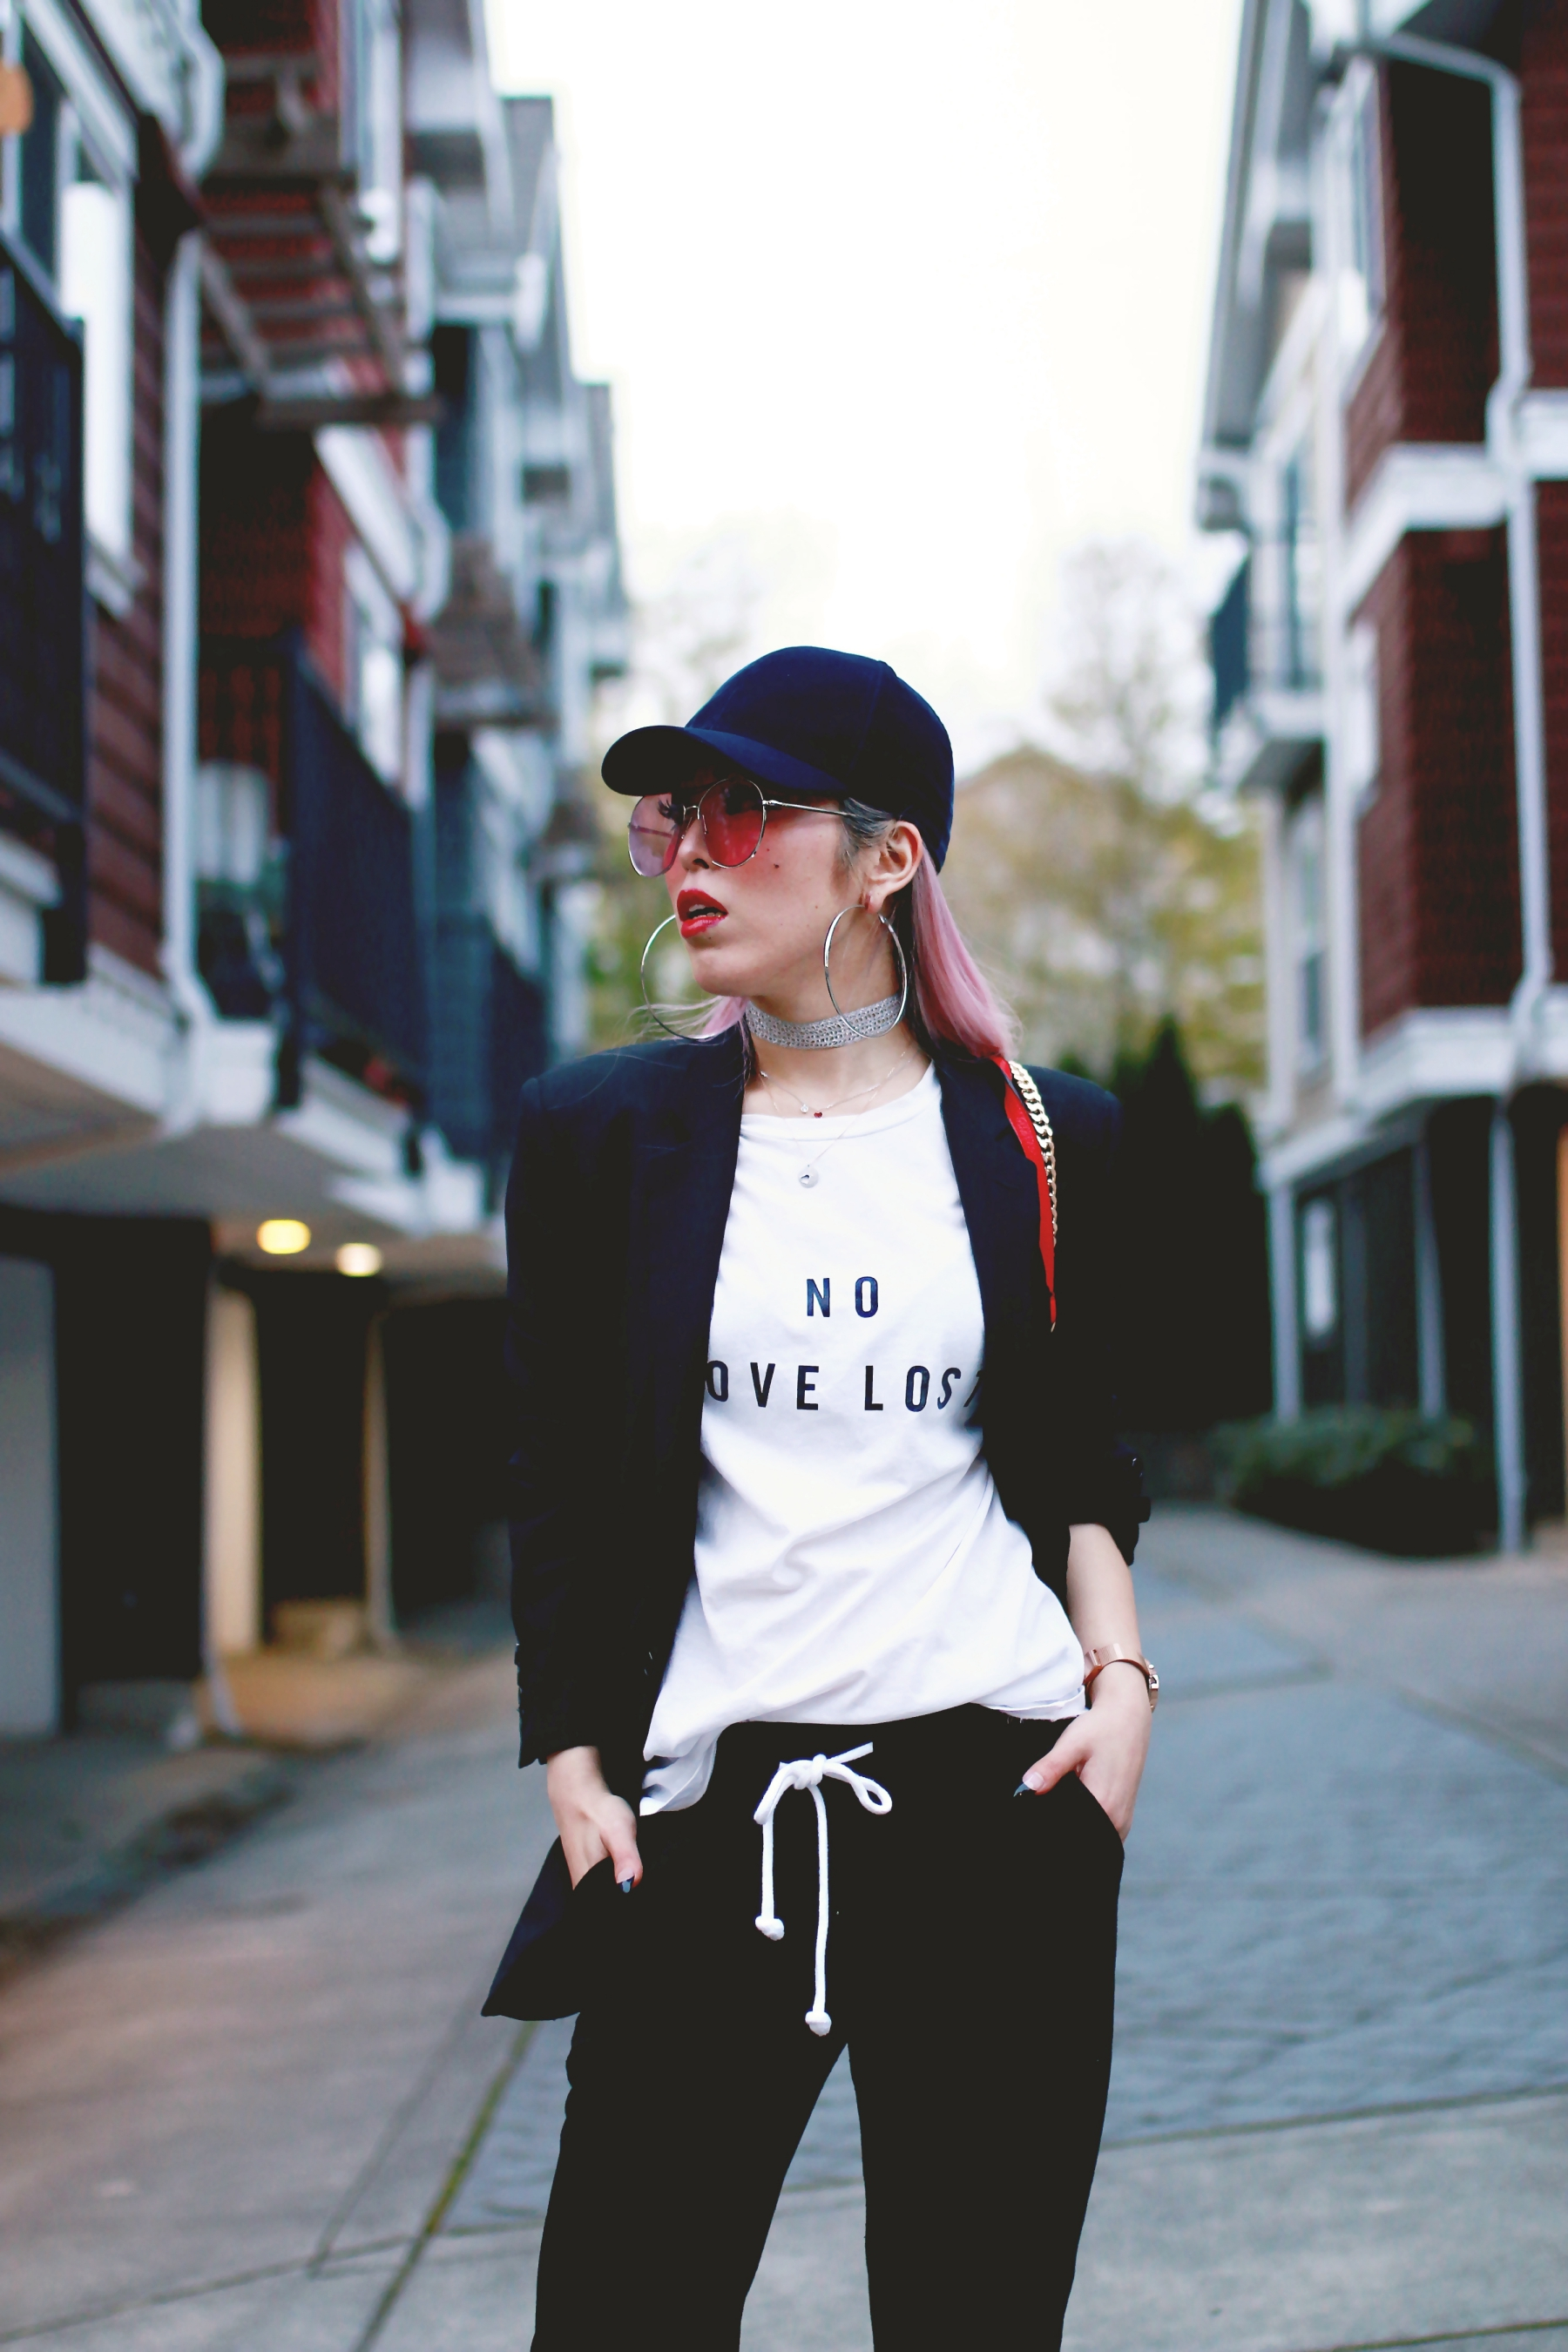 H&M Baseball Cap_Shop Sincerely Jules No LOVE LOST Tee_H&M Sweatpants_YSL Boyfriend Blazer_Zara Choker_Forever 21 Hoop Earrings_Mellow World Red Bag_Charlotte Russe Nude Sandals_L'Oreal Red Lipstick_Aikas Love Closet_Seattle Fashion Style Blogger_Pink Hair 7